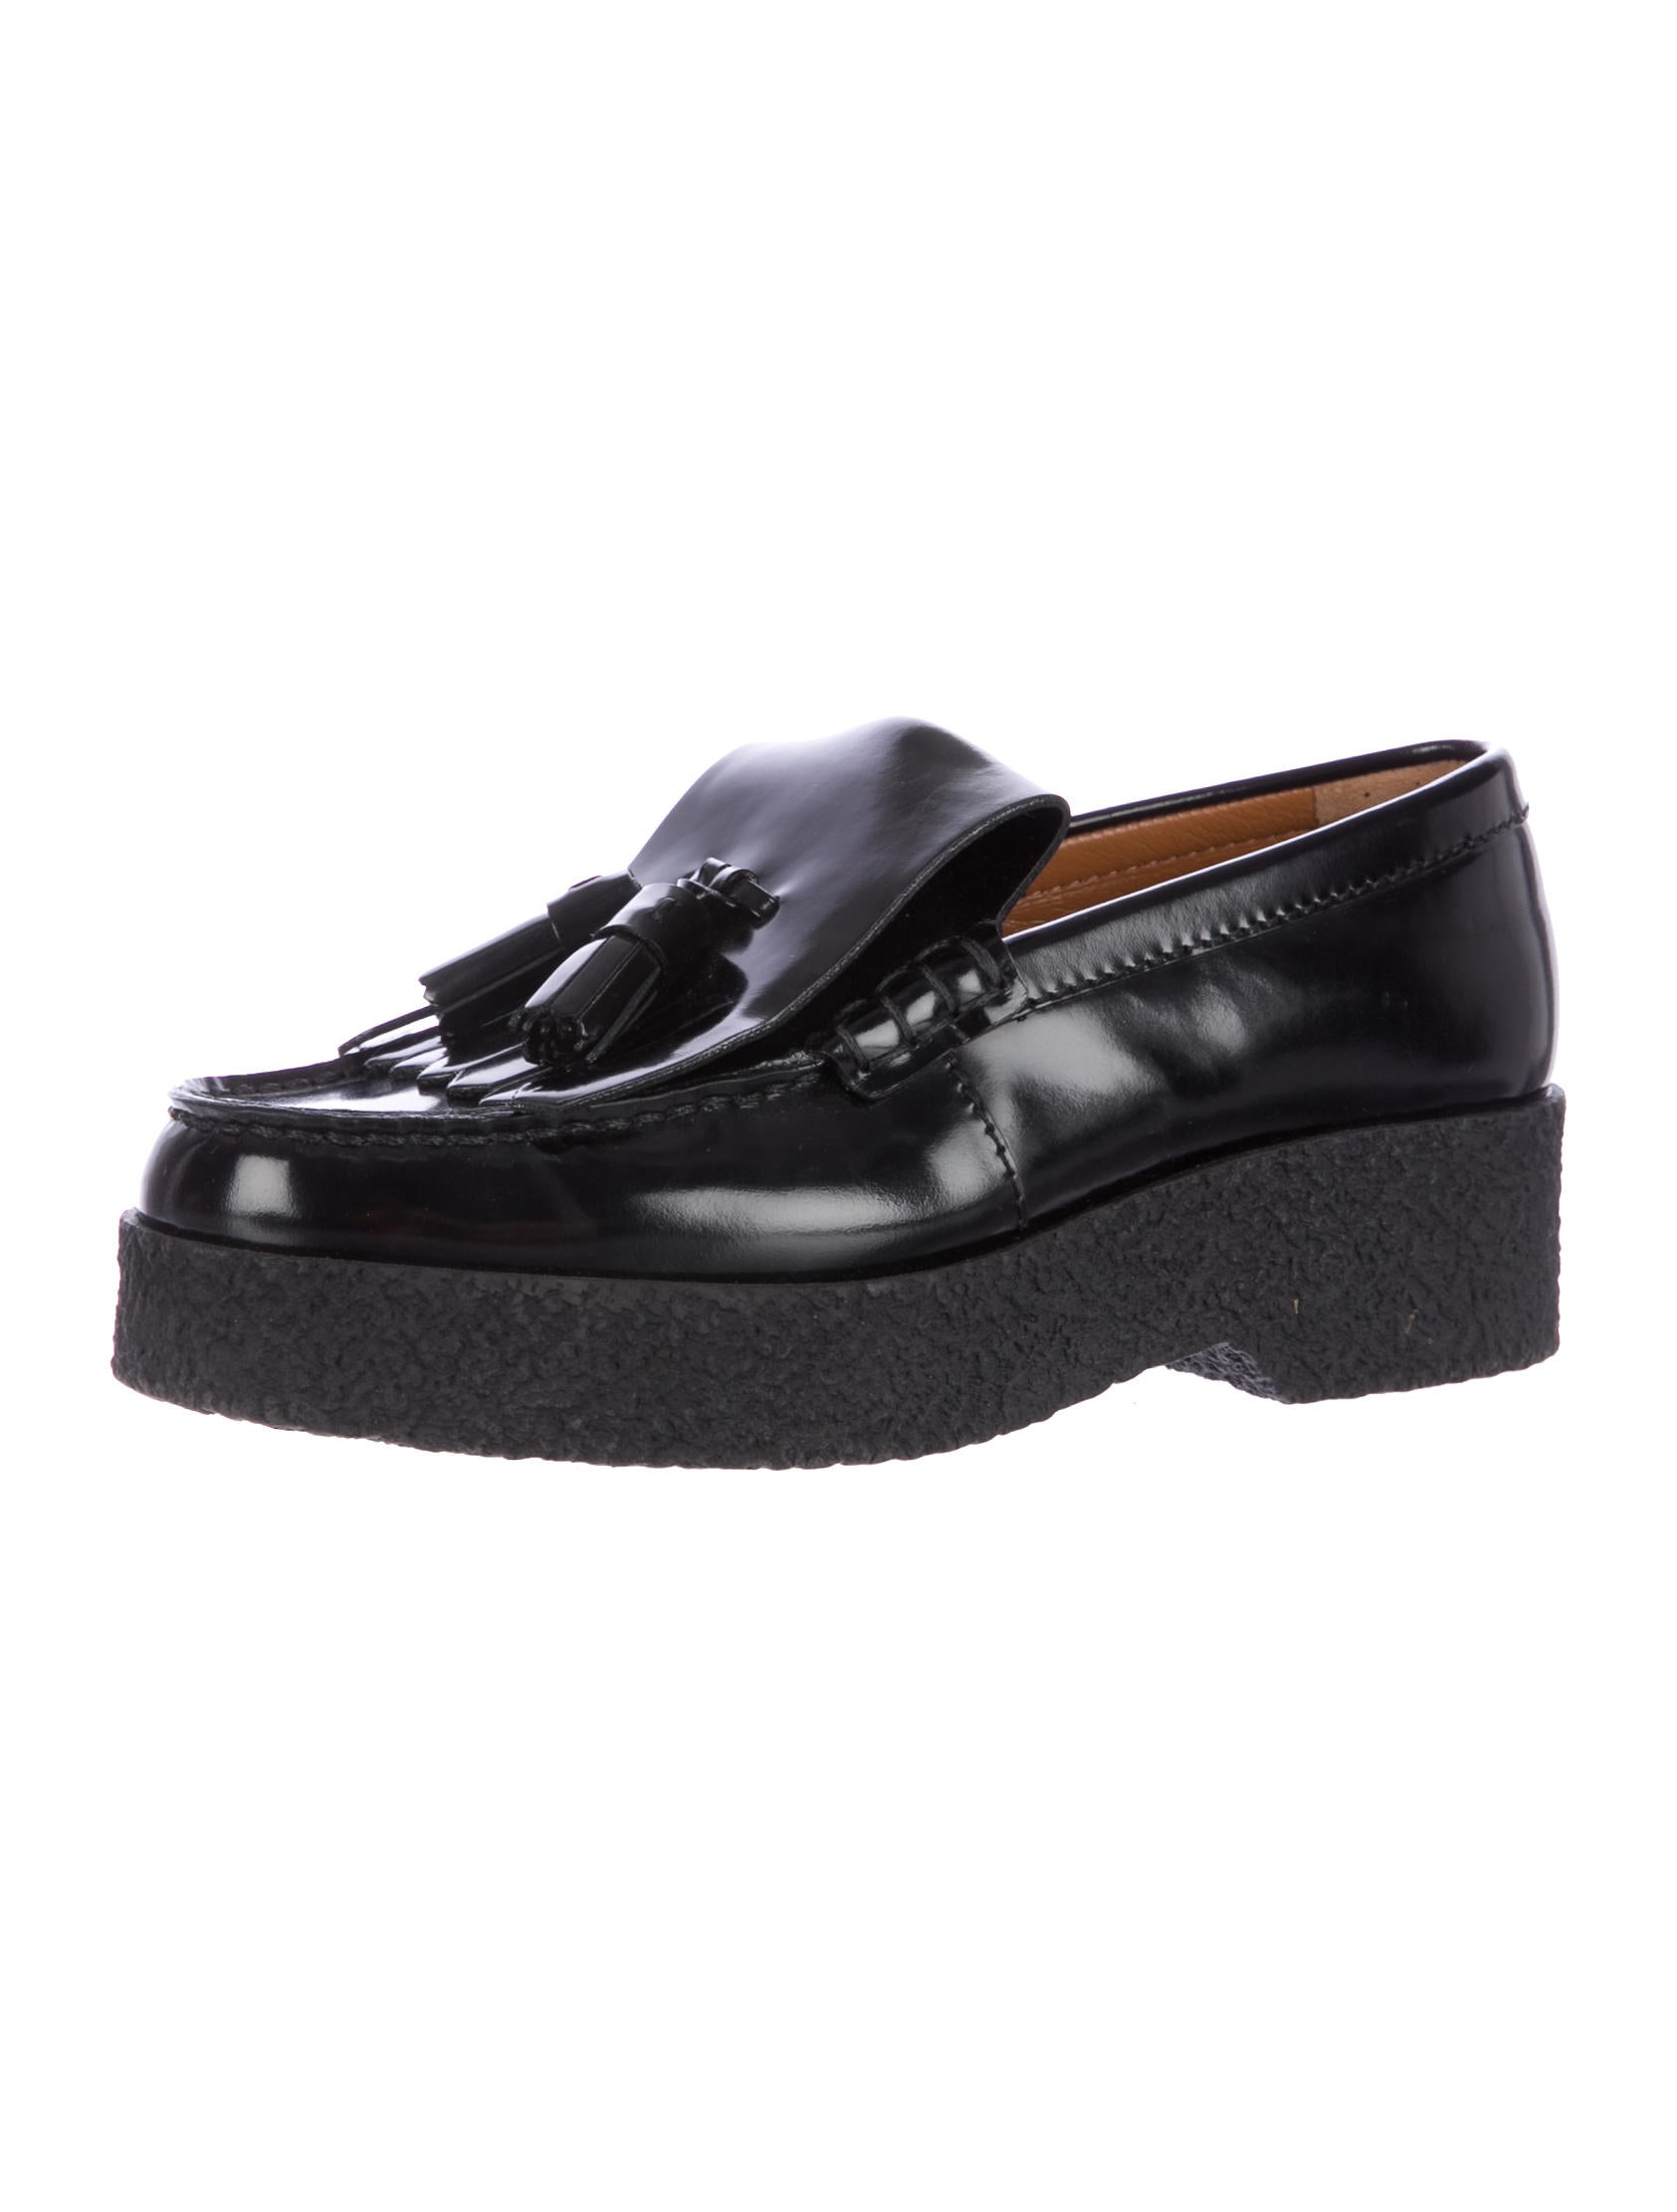 c 233 line leather platform loafers shoes cel32473 the